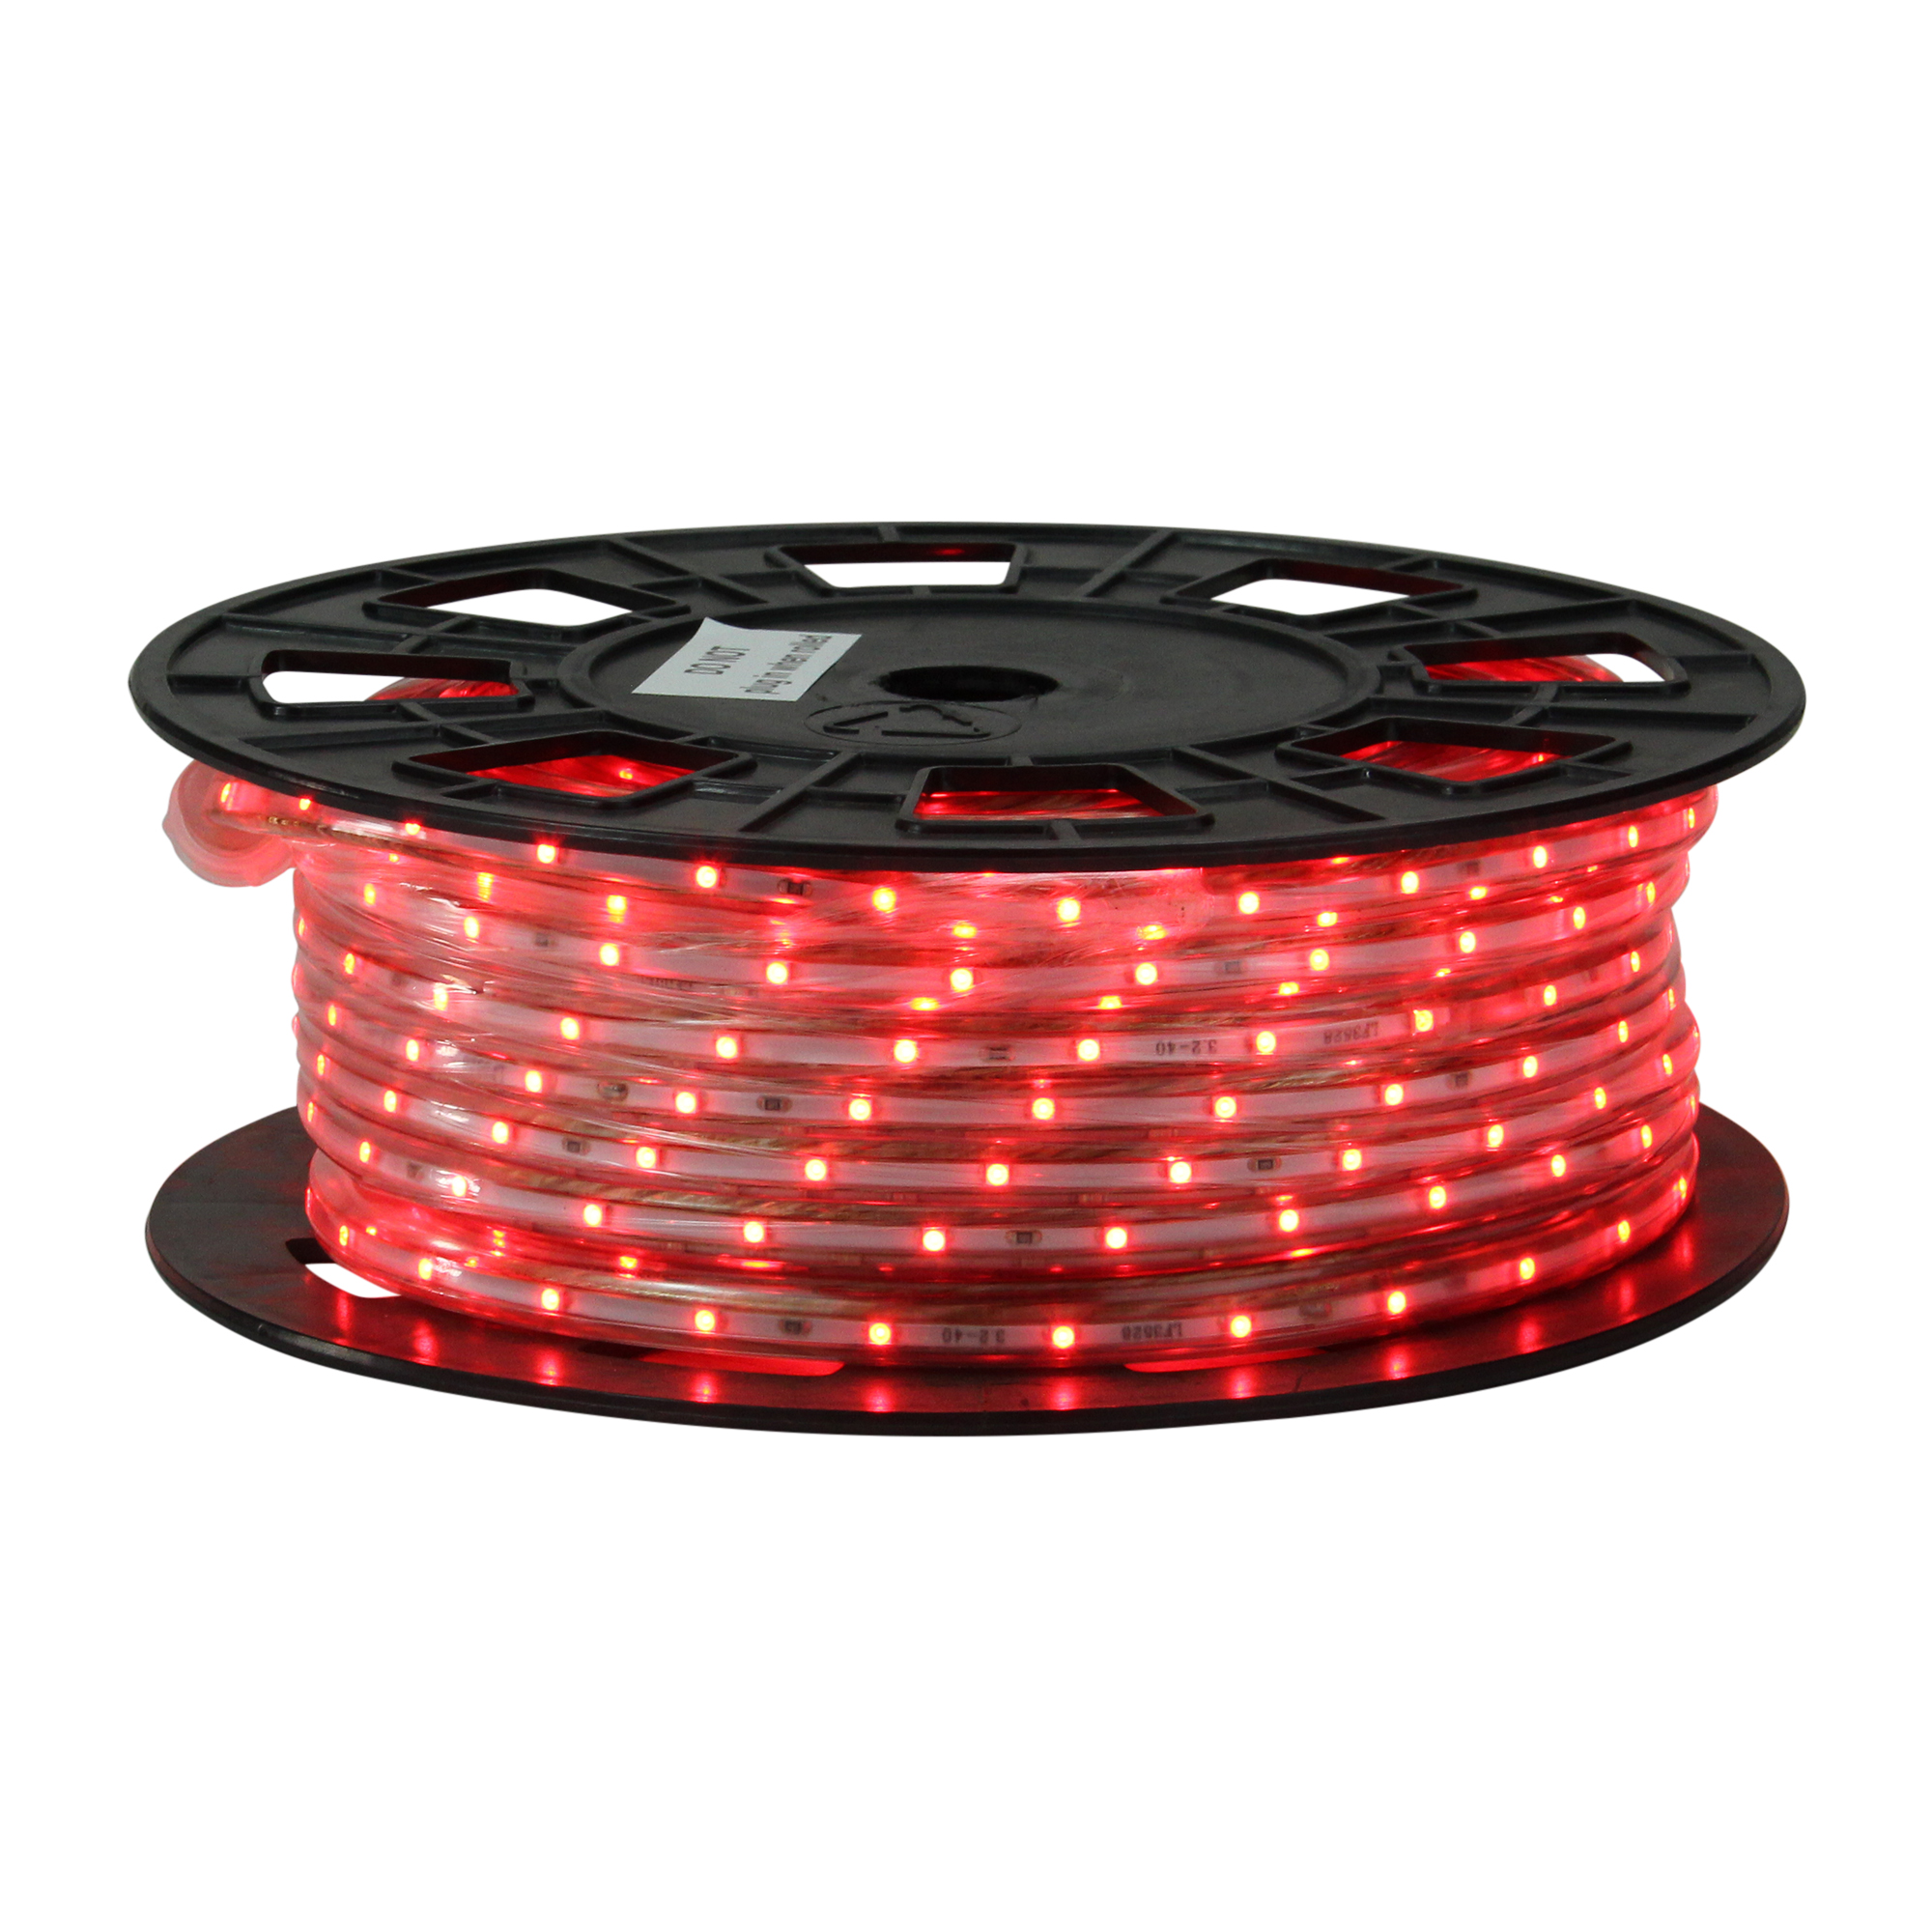 Details About Cc Christmas Decor 100 Commercial Red Led Christmas Linear Tape Lighting